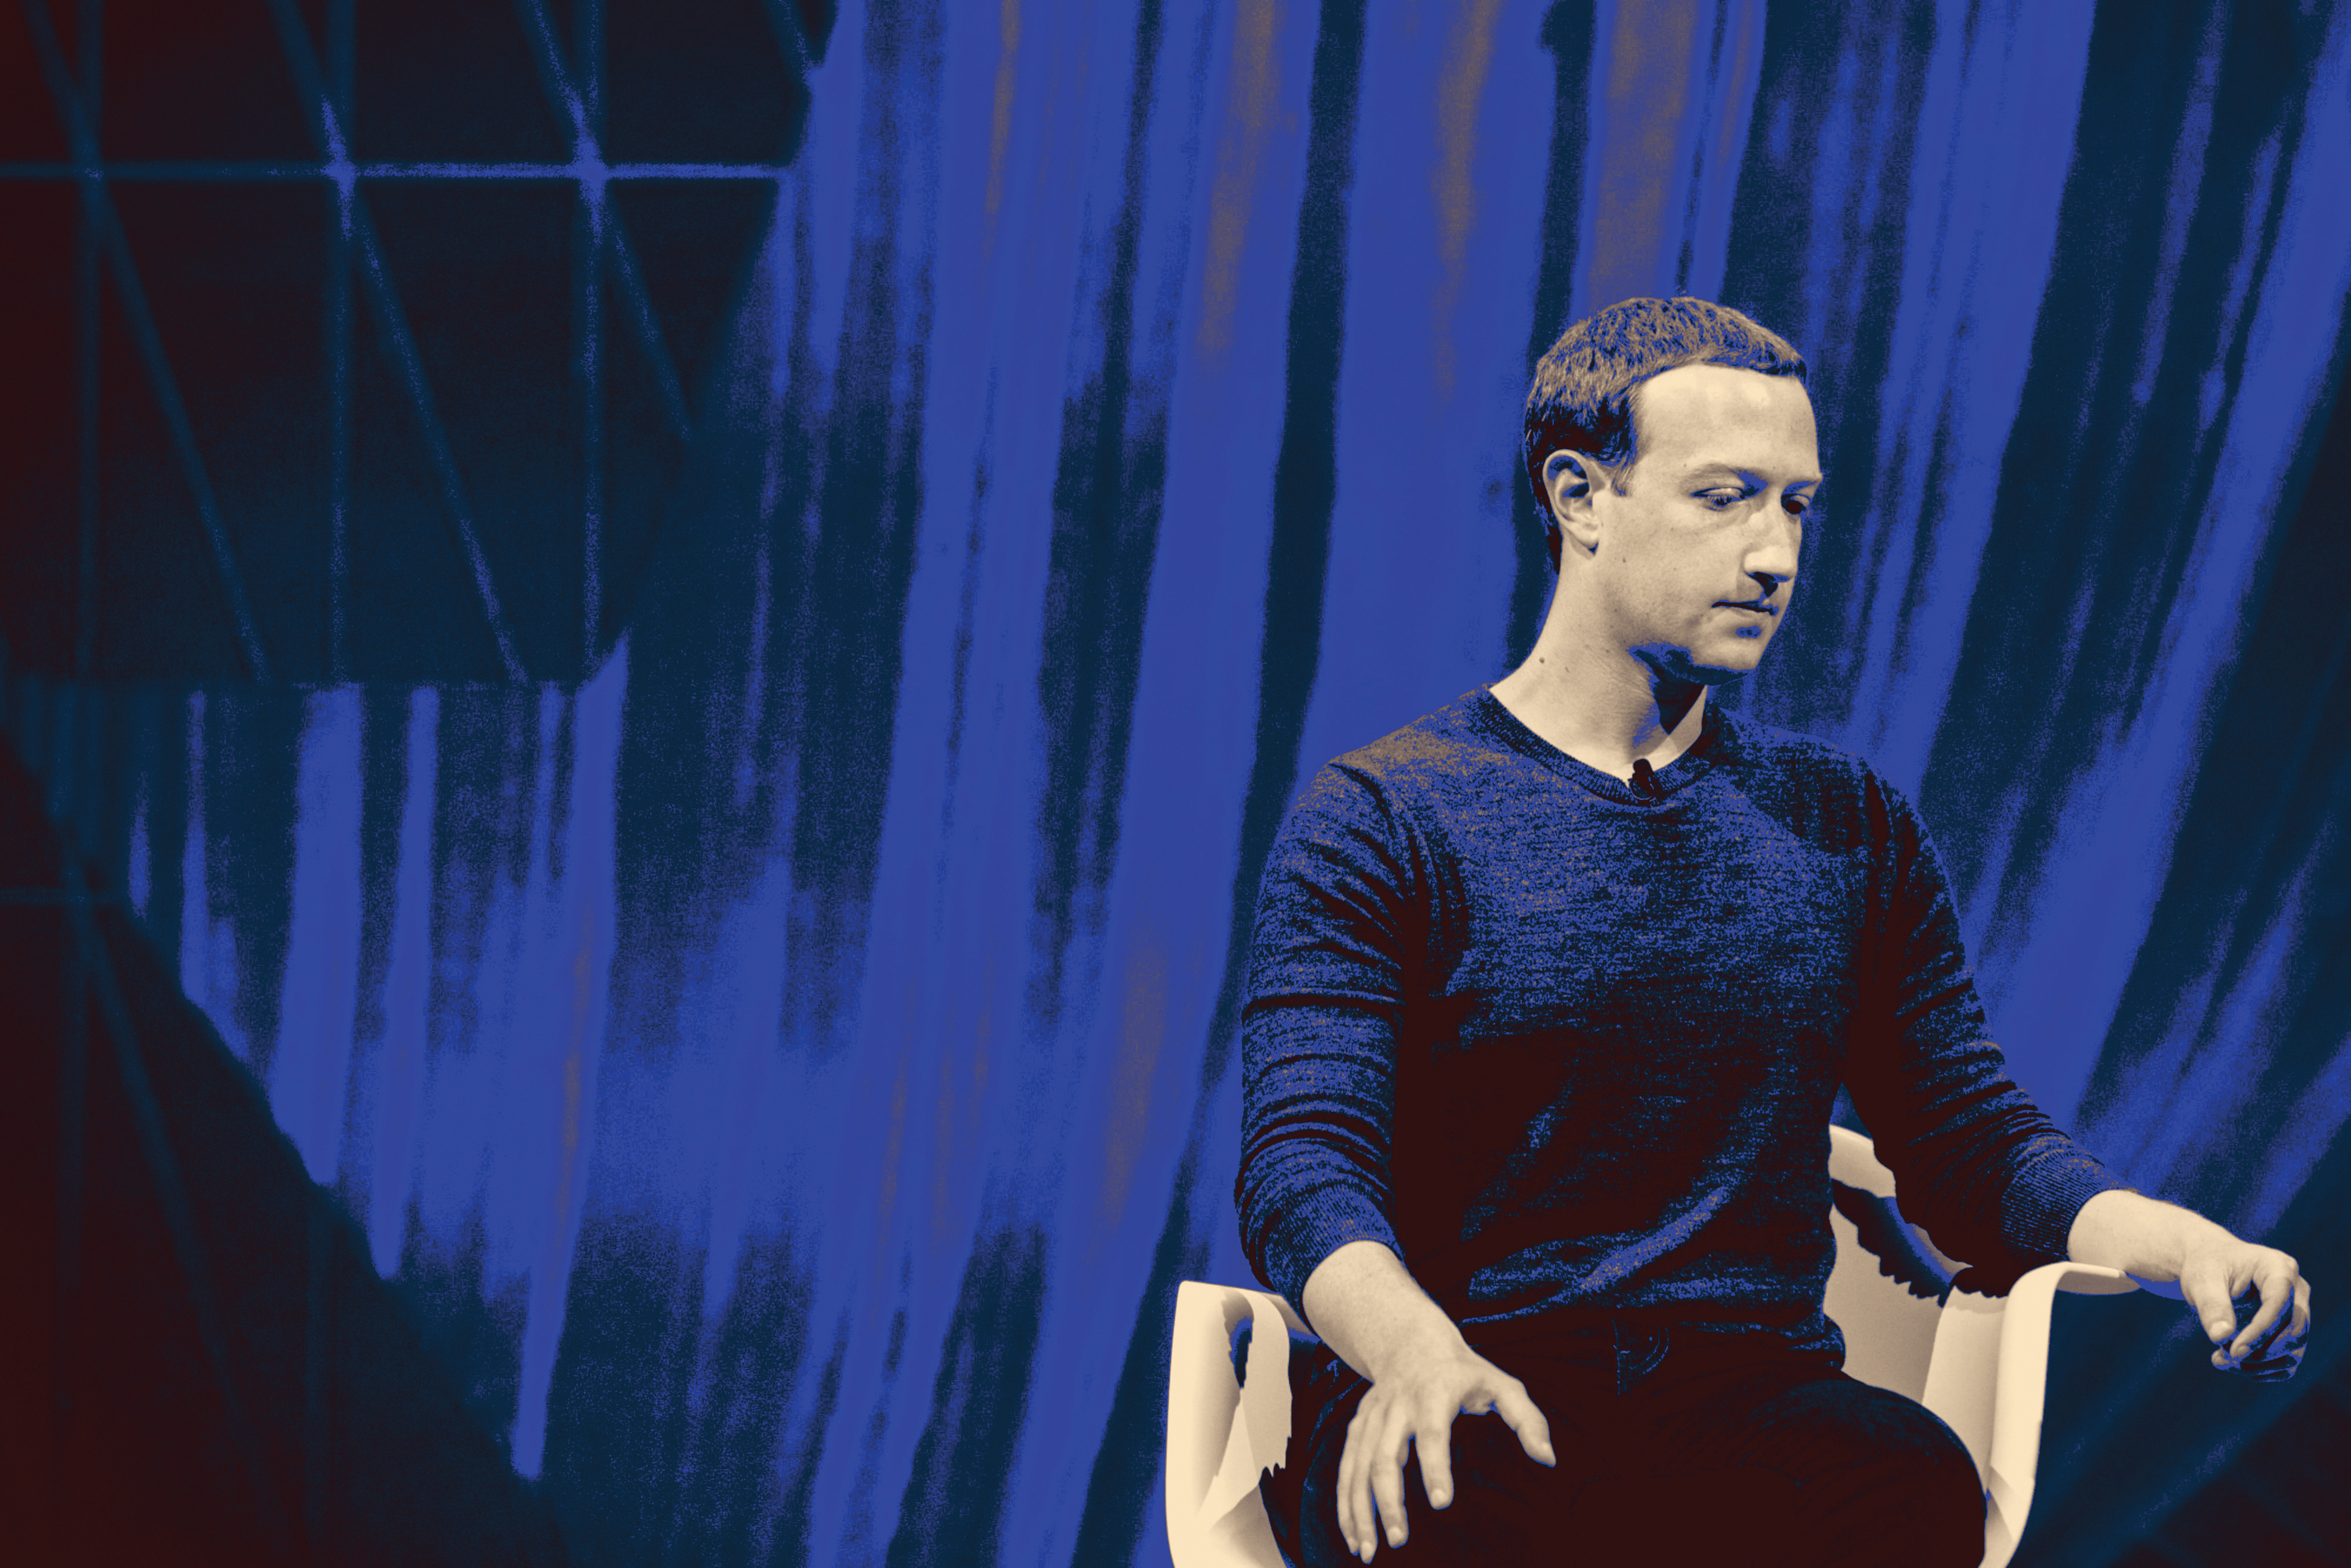 Facebook promises guardrails for brands scared of the chaos in its core product: News Feed